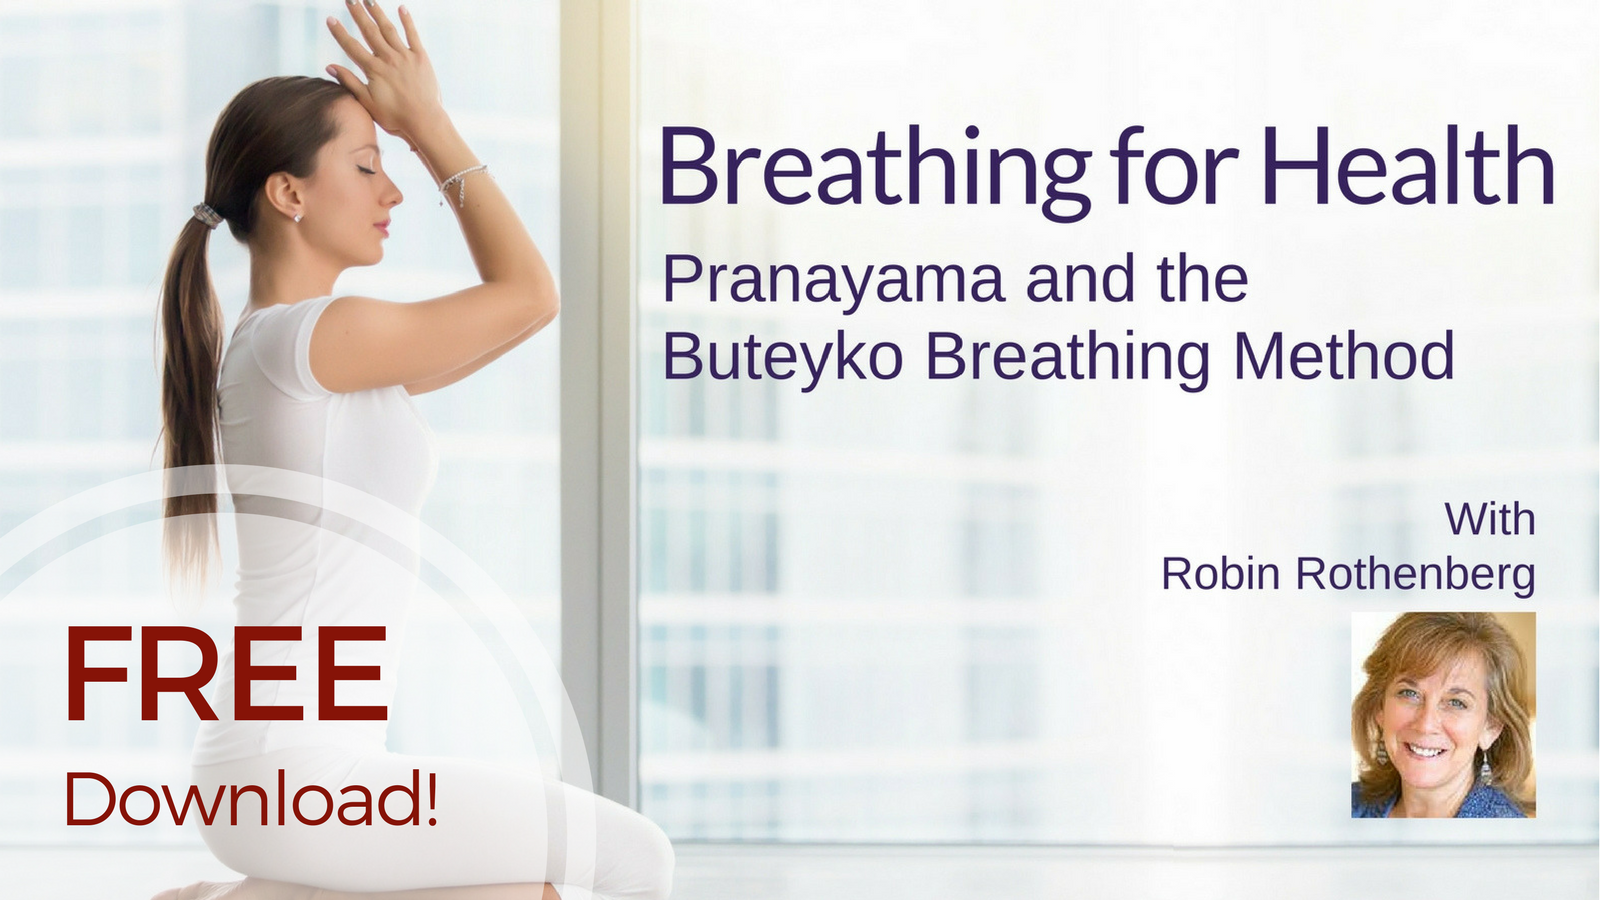 free_download_robin_rothenberg_yoga_breathing_for_health